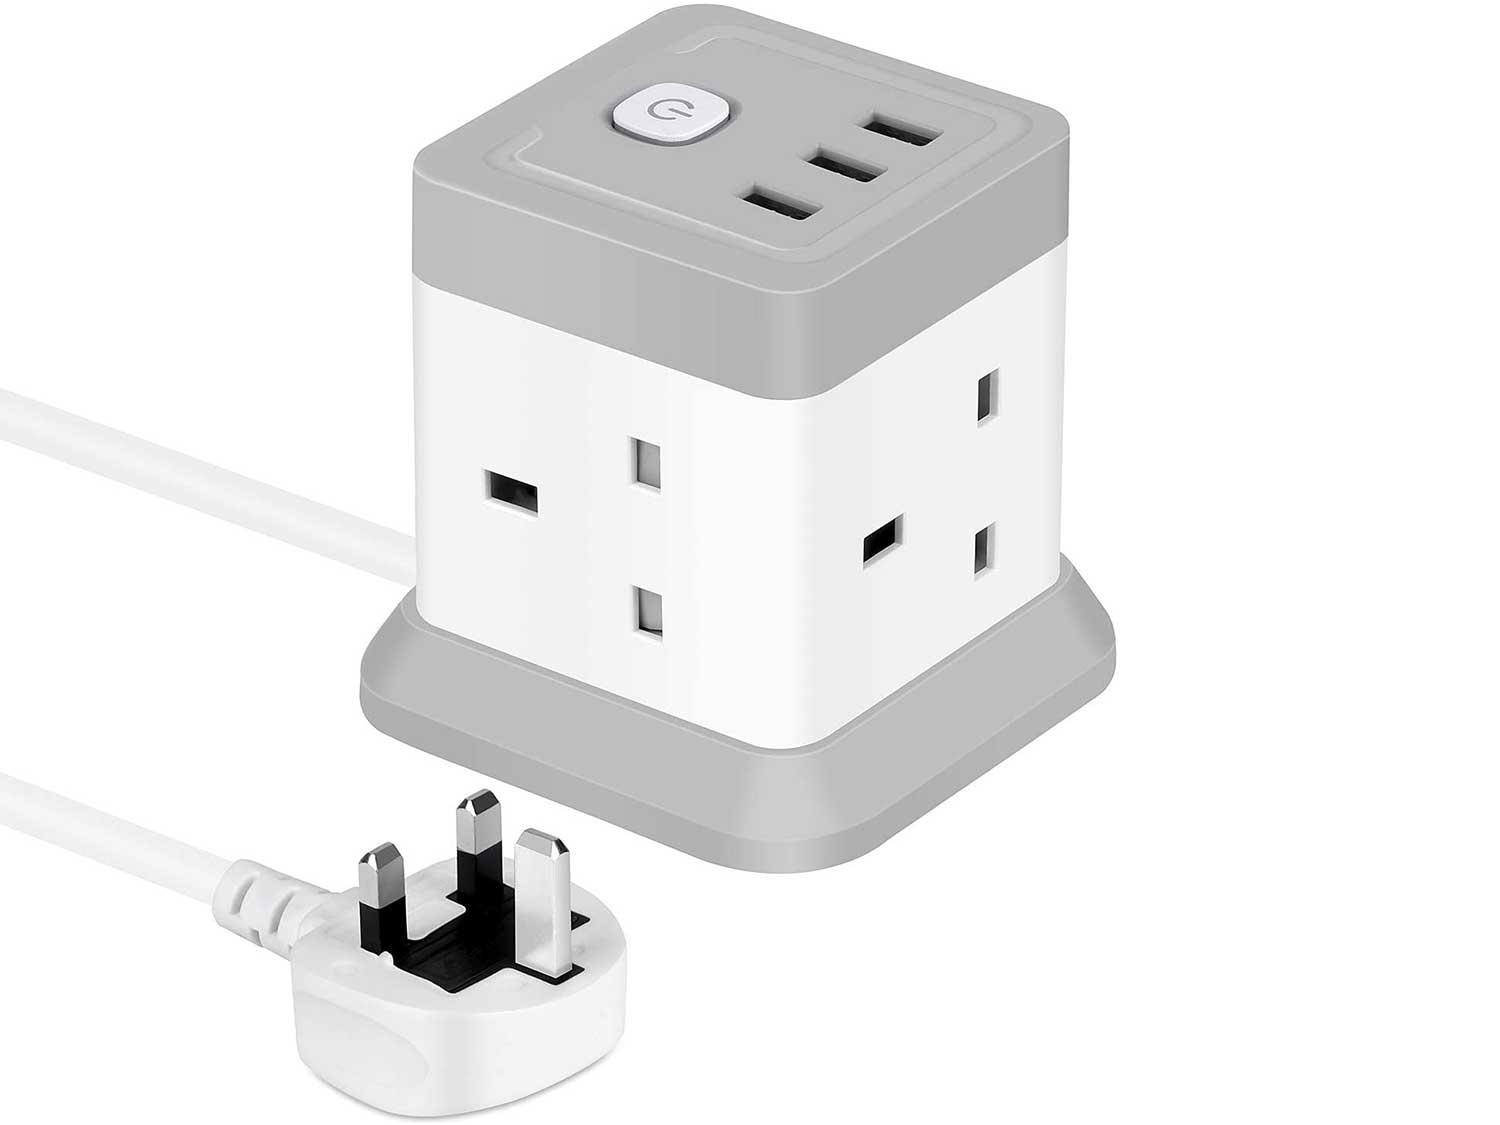 Cube Extension Lead with USB, 4 Way Power Strip with 3 USB Ports (5V/2.4A) BEVA UK Power Socket with Switch 1.5M Extension Cords for Home, Office, Travel, Dorm Room (White+Gray)